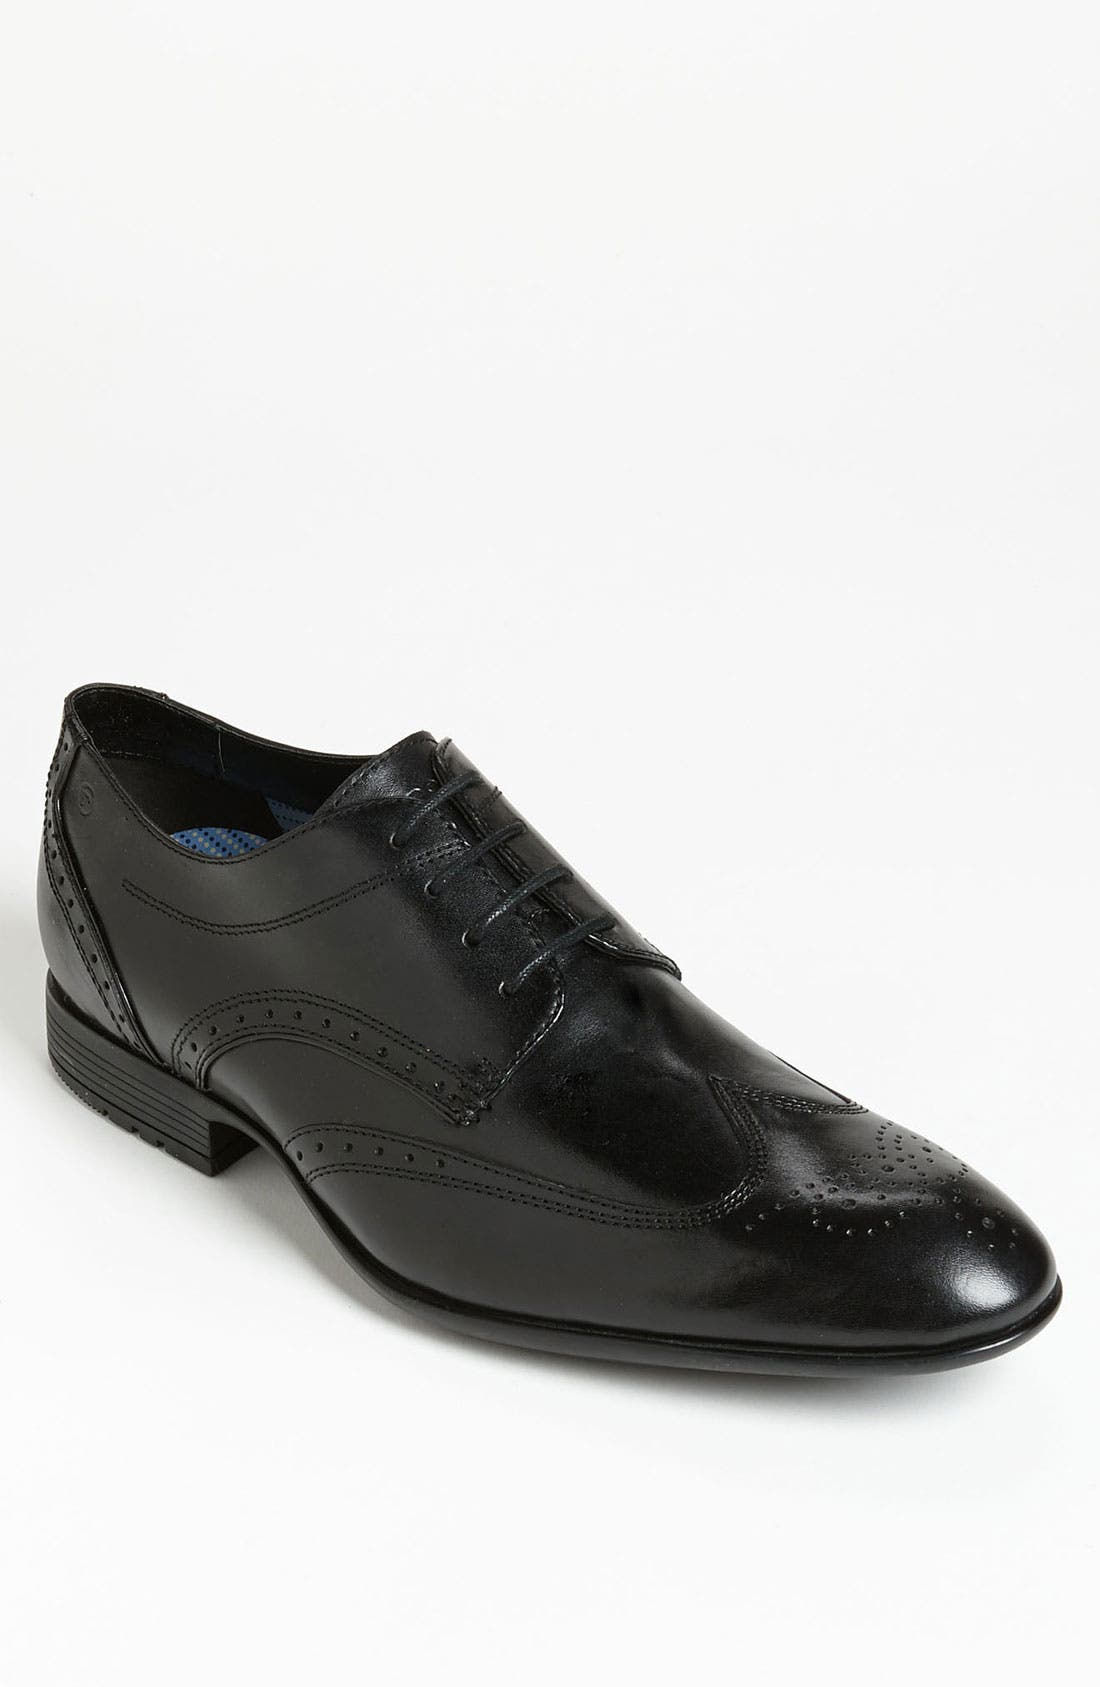 Main Image - Rockport 'Dialed In' Wingtip